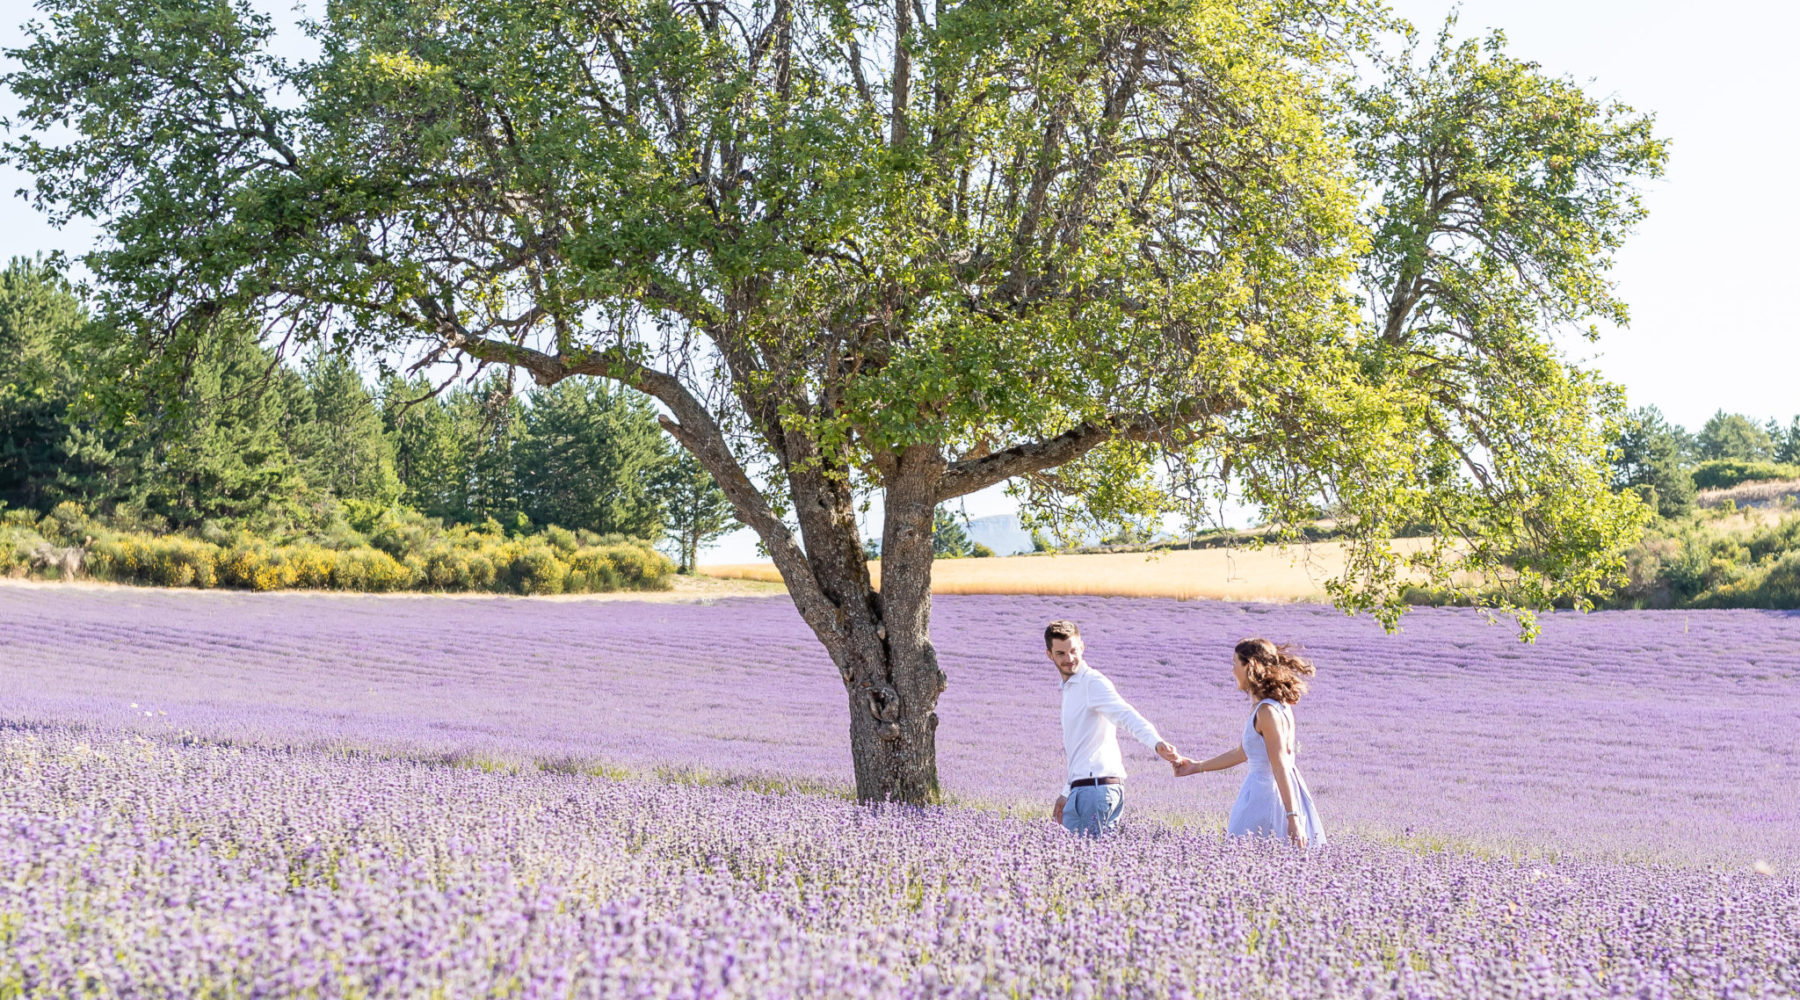 Engagement photo session in the lavender fields in Sault, Provence, France by photographer Marie Calfopoulos